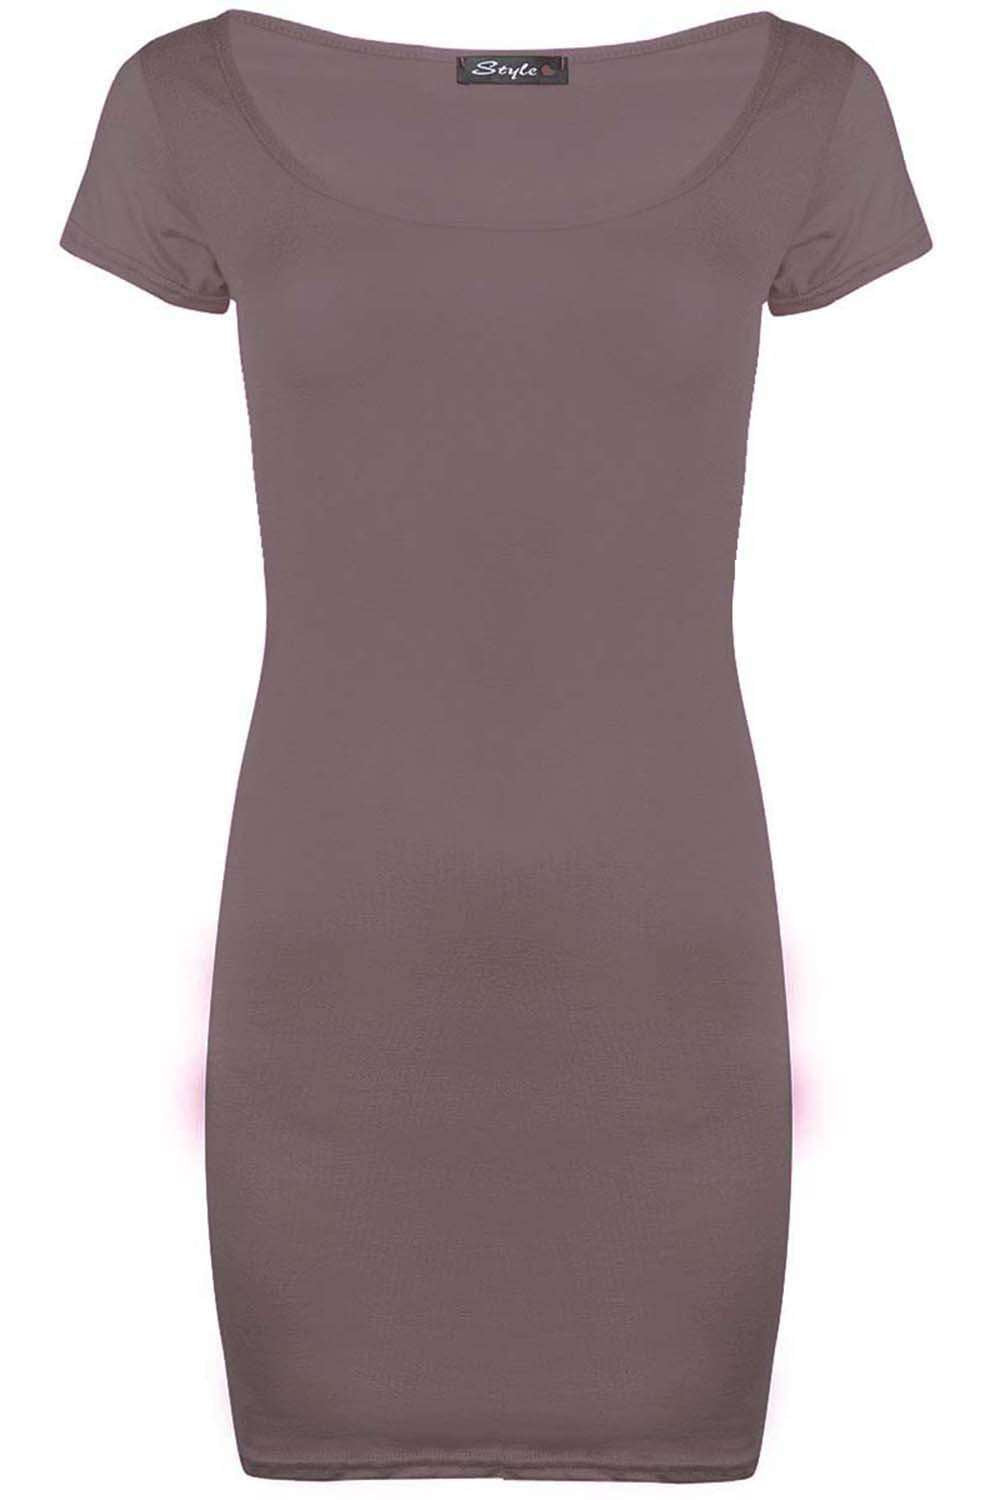 Melody Short Sleeve Mini Bodycon Dress - bejealous-com